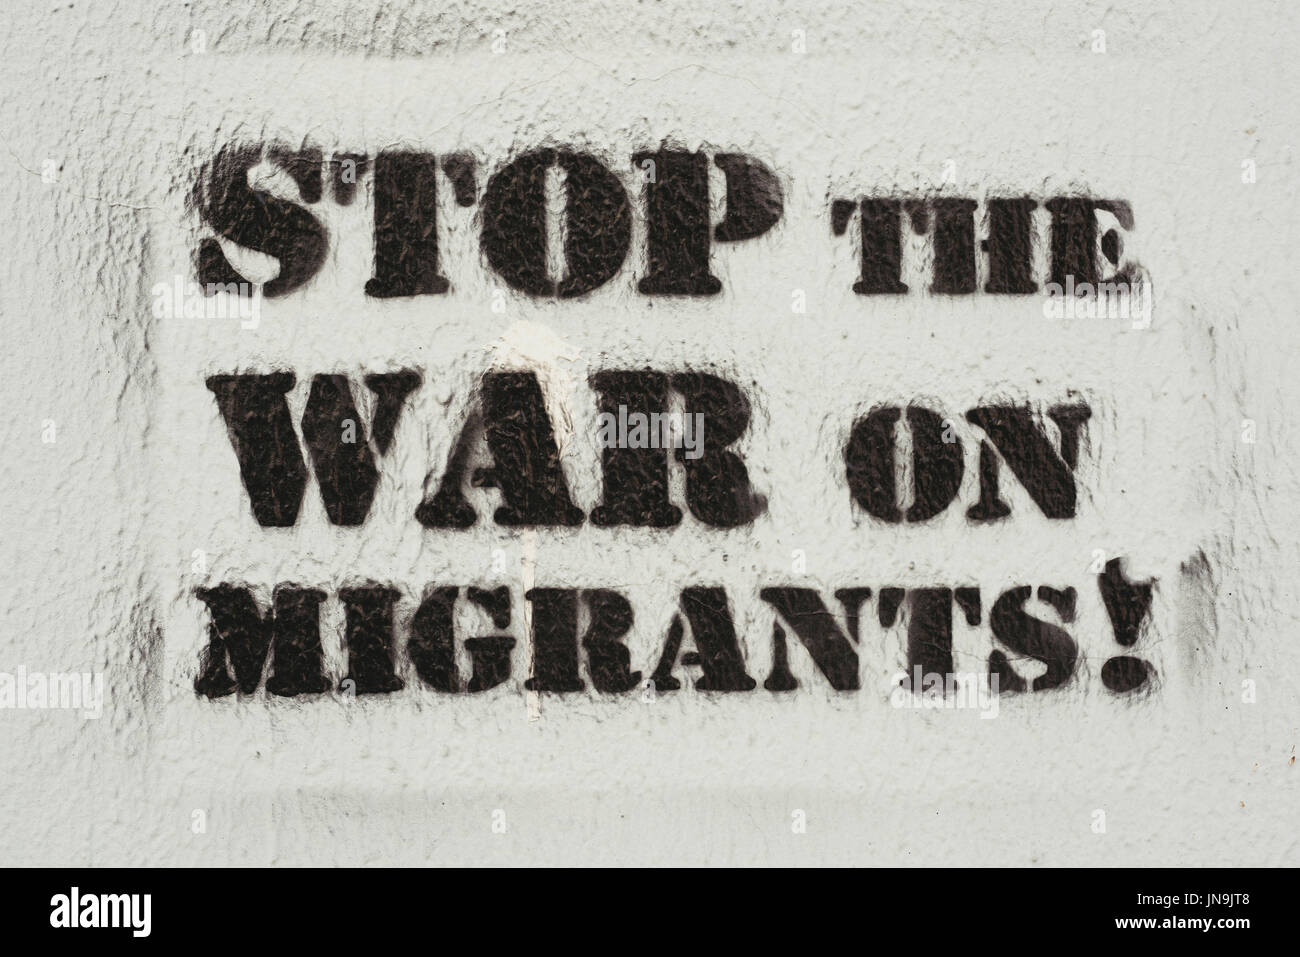 NOVI SAD, SERBIA - JULY 24, 2017: Stop the war on migrants stencil graffiti on the wall - Stock Image